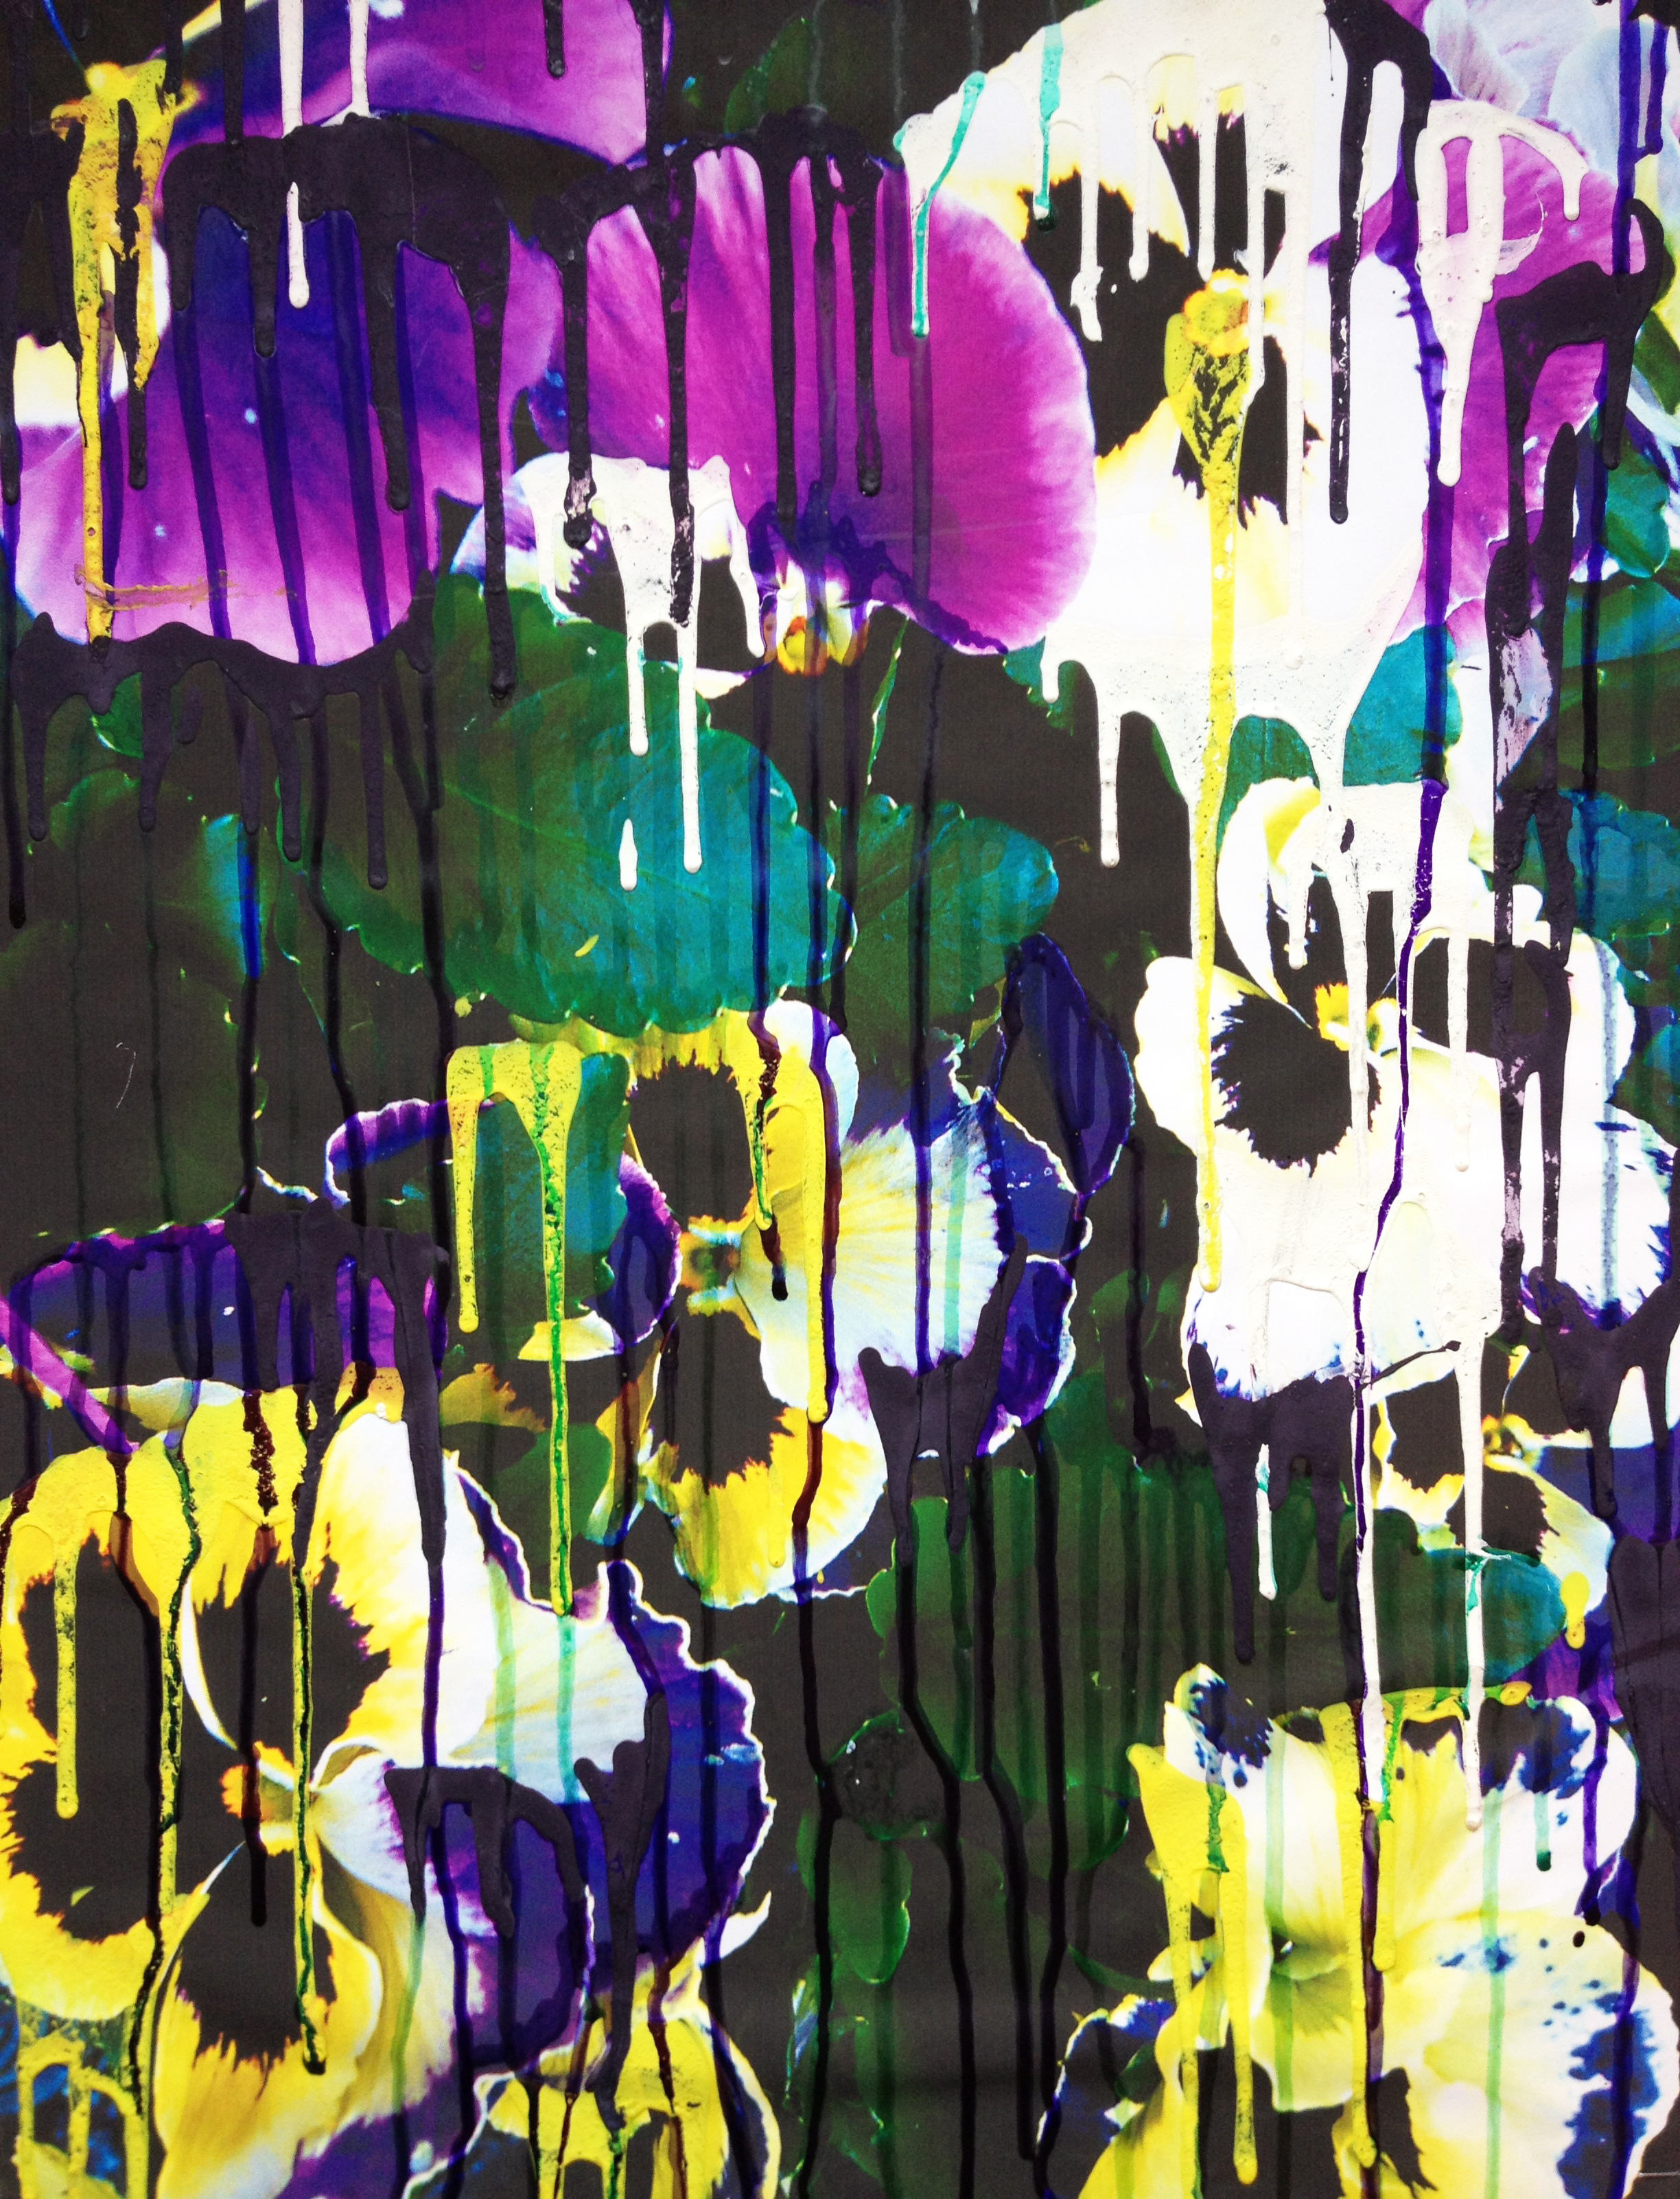 MELTING PANSIES